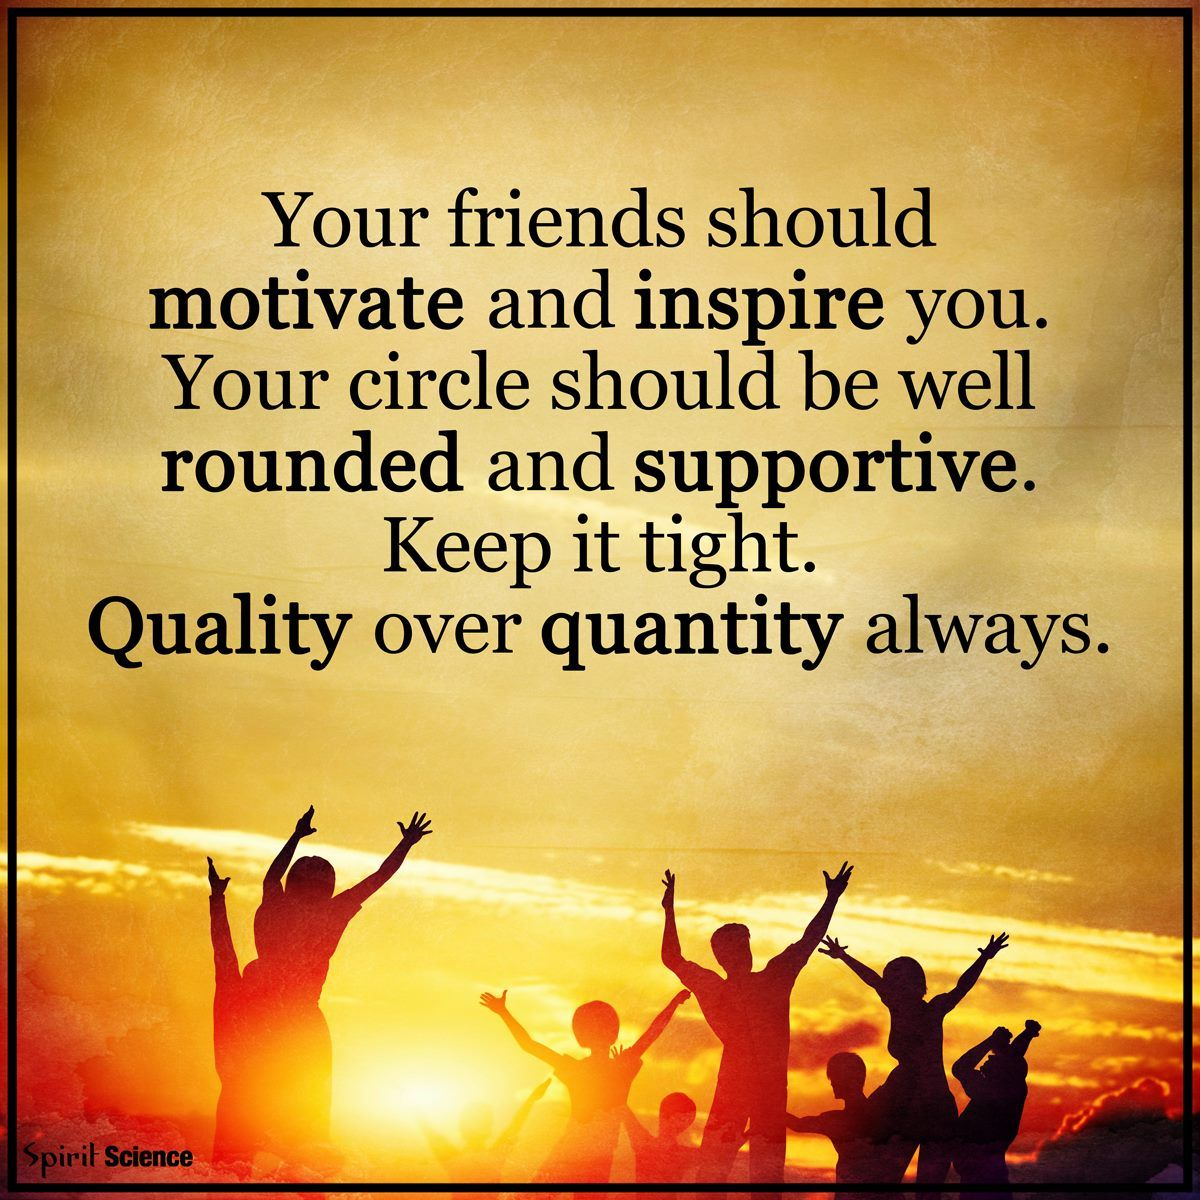 Inspirational Quotes About Friendship Pinira Rosa On Quotes  Pinterest